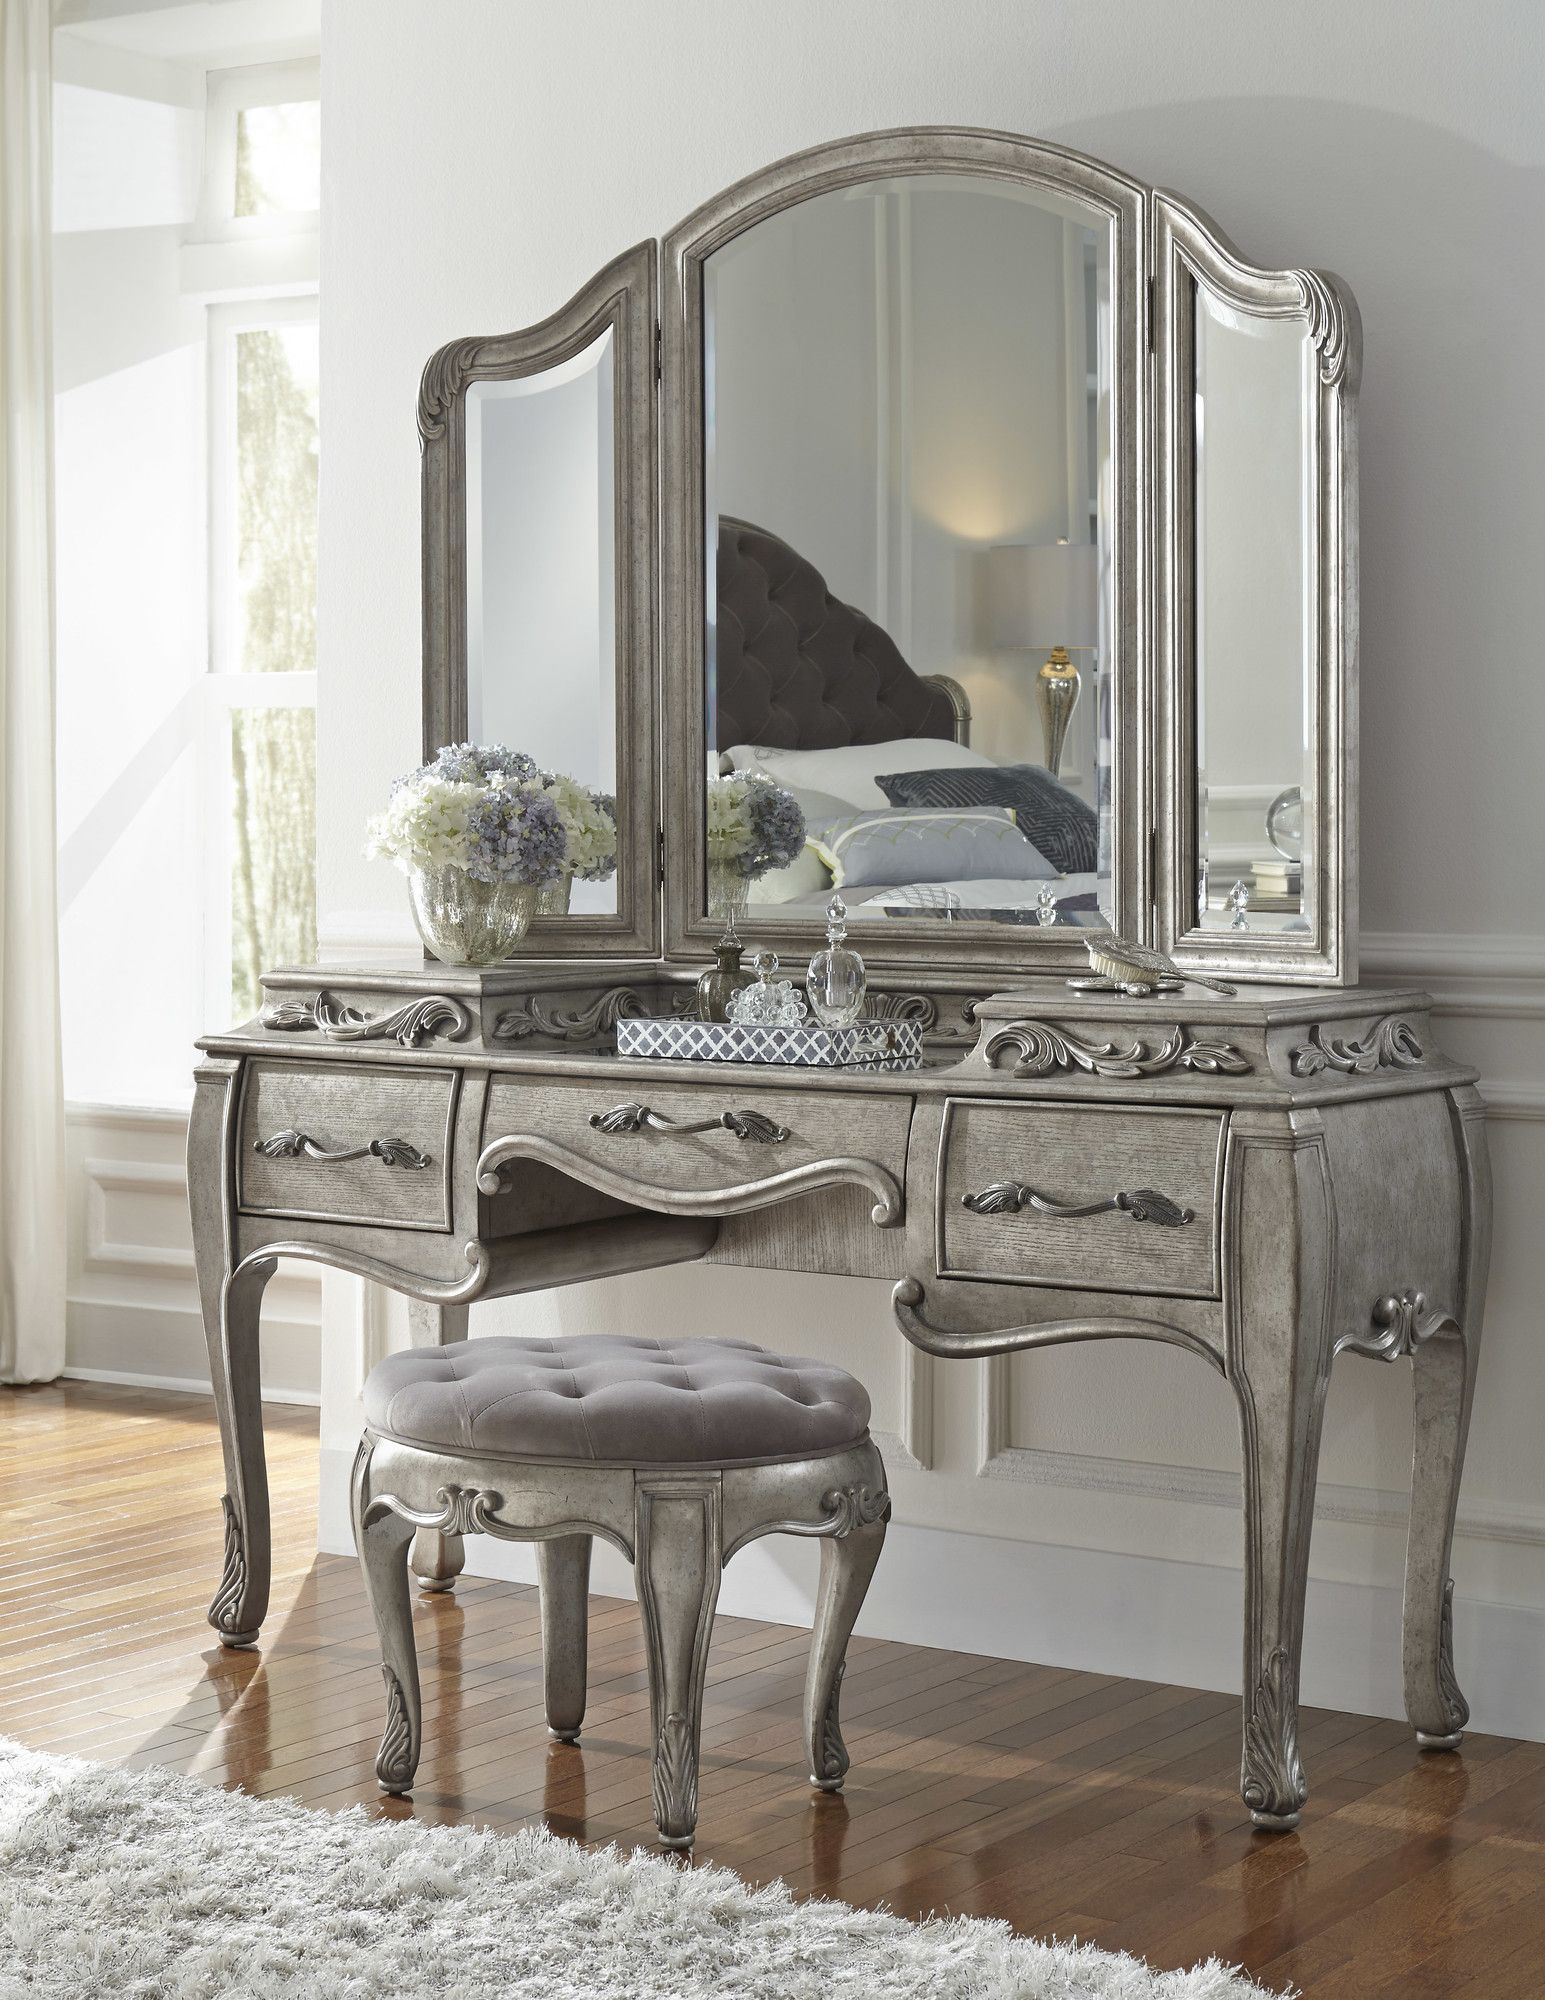 Holmes Bathroom Vanity Mirror In 2018 Room Pinterest Vanity